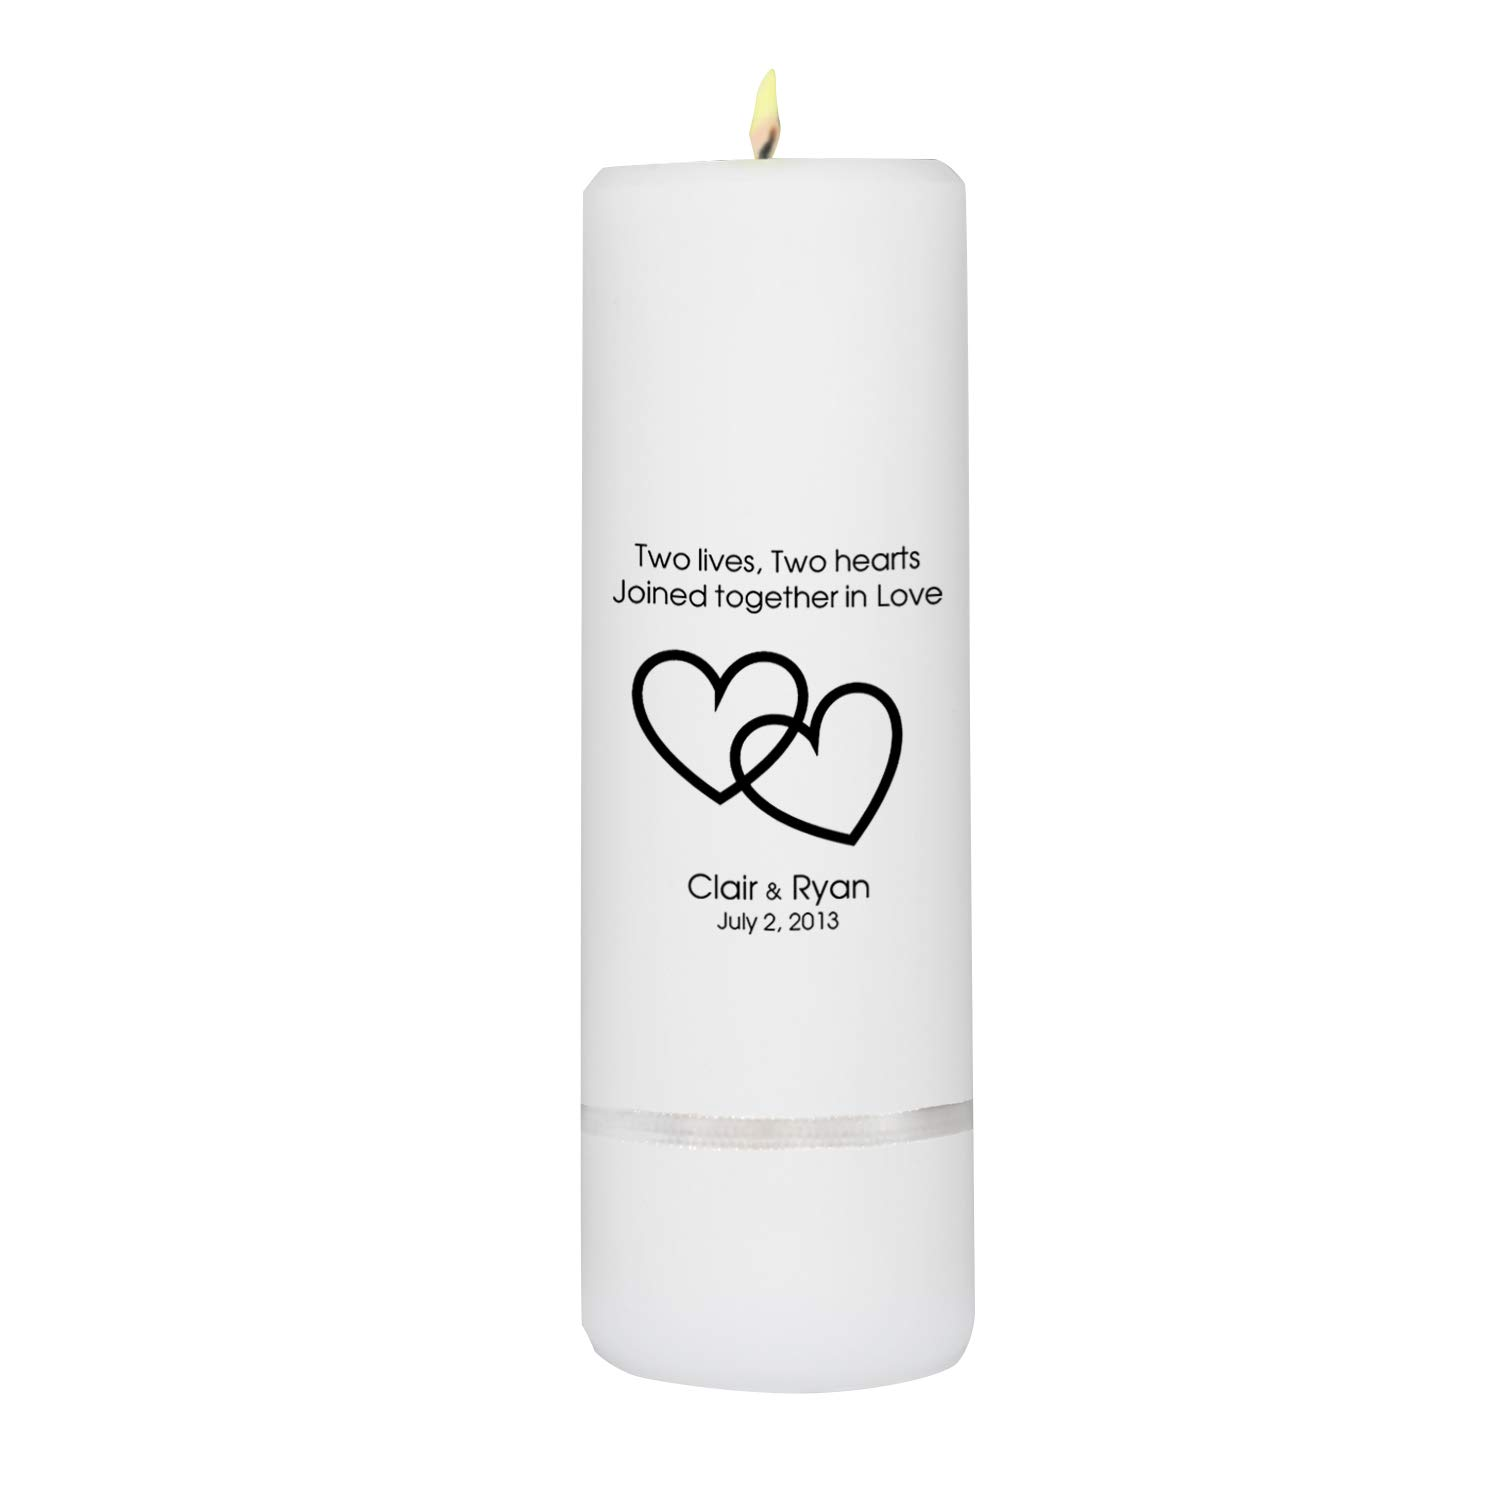 Personalized Unity Candle Personalized Wedding Candle Wedding Gift Monogrammed Wedding Unity Candle 3 X9